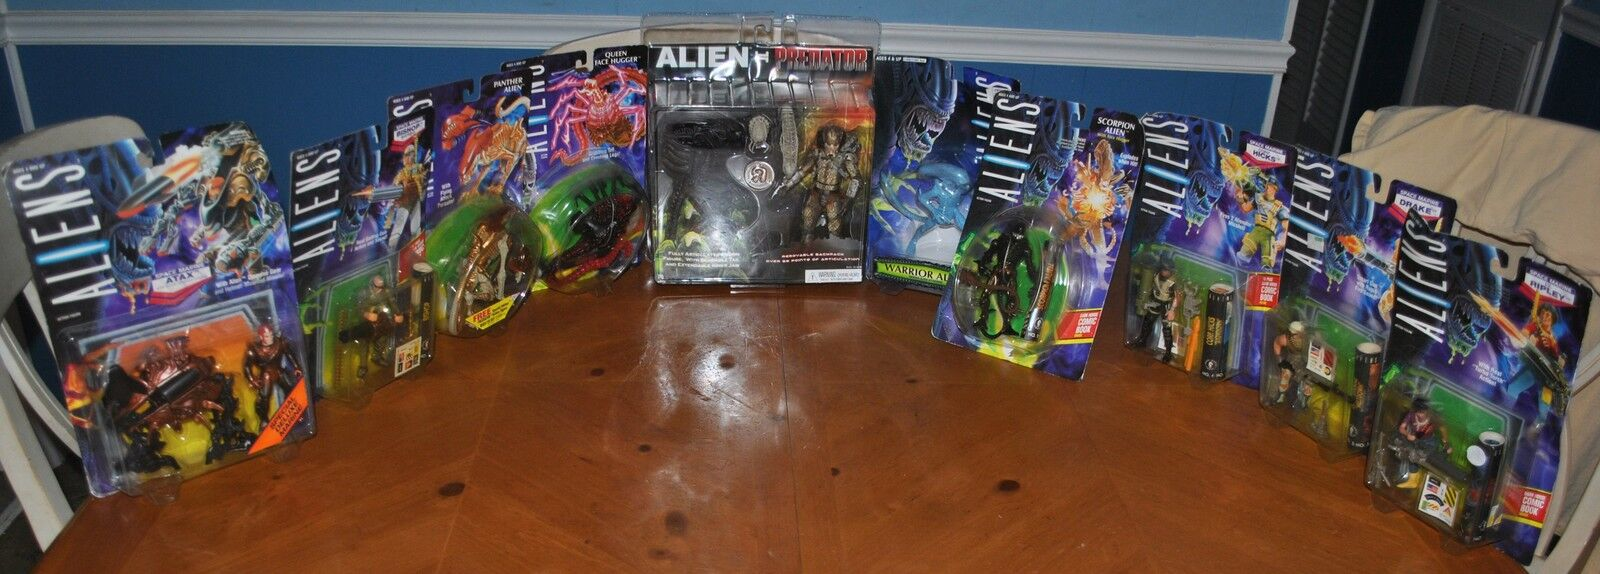 ULTIMATE ALIEN / ALIENS ACTION FIGURE DEAL WITH SOME VERY RARE PIECES